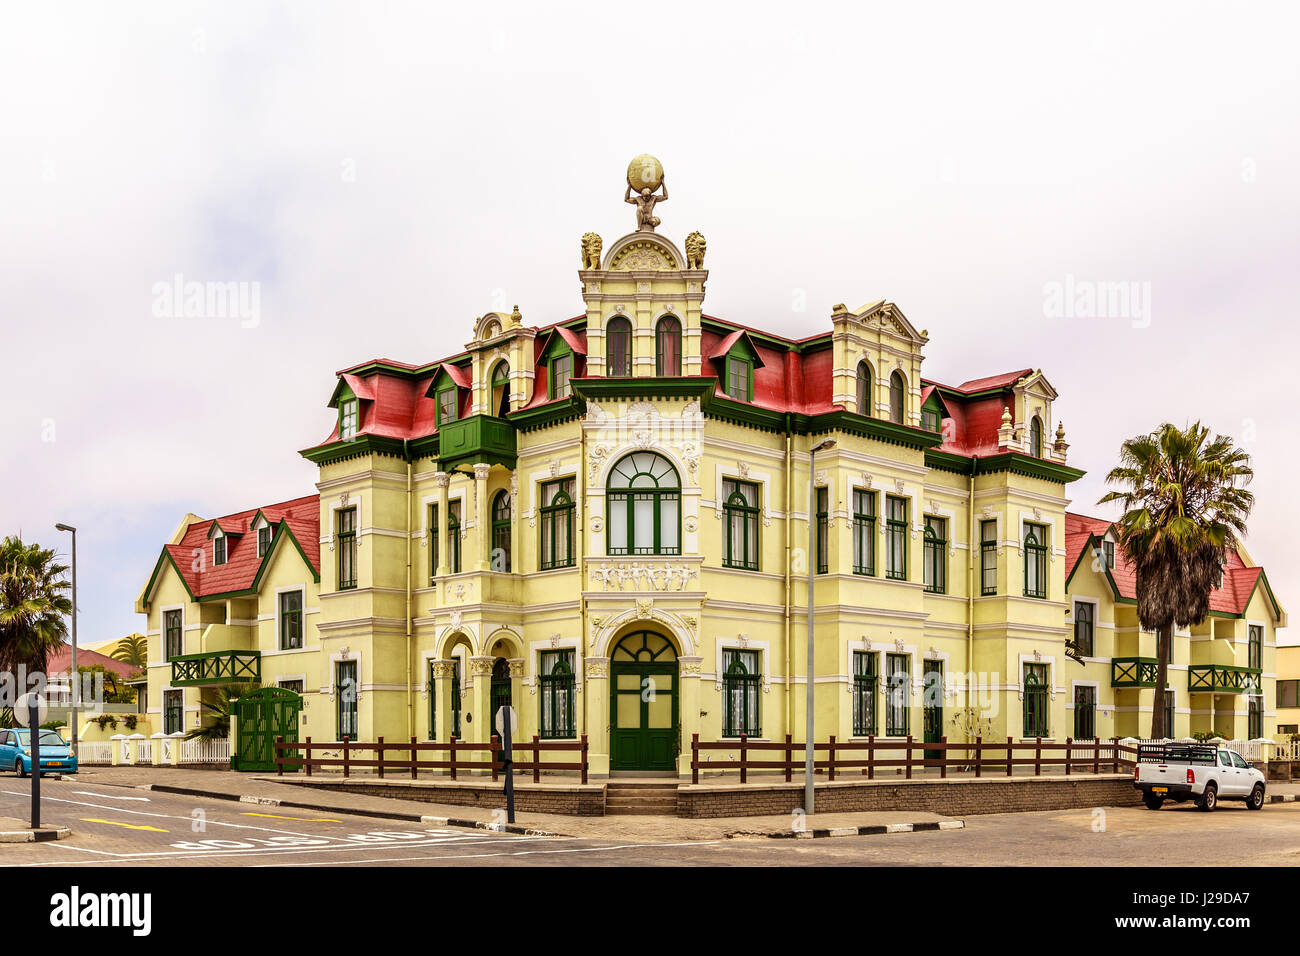 10 >> German Colonial Architecture Stock Photos & German Colonial Architecture Stock Images - Alamy